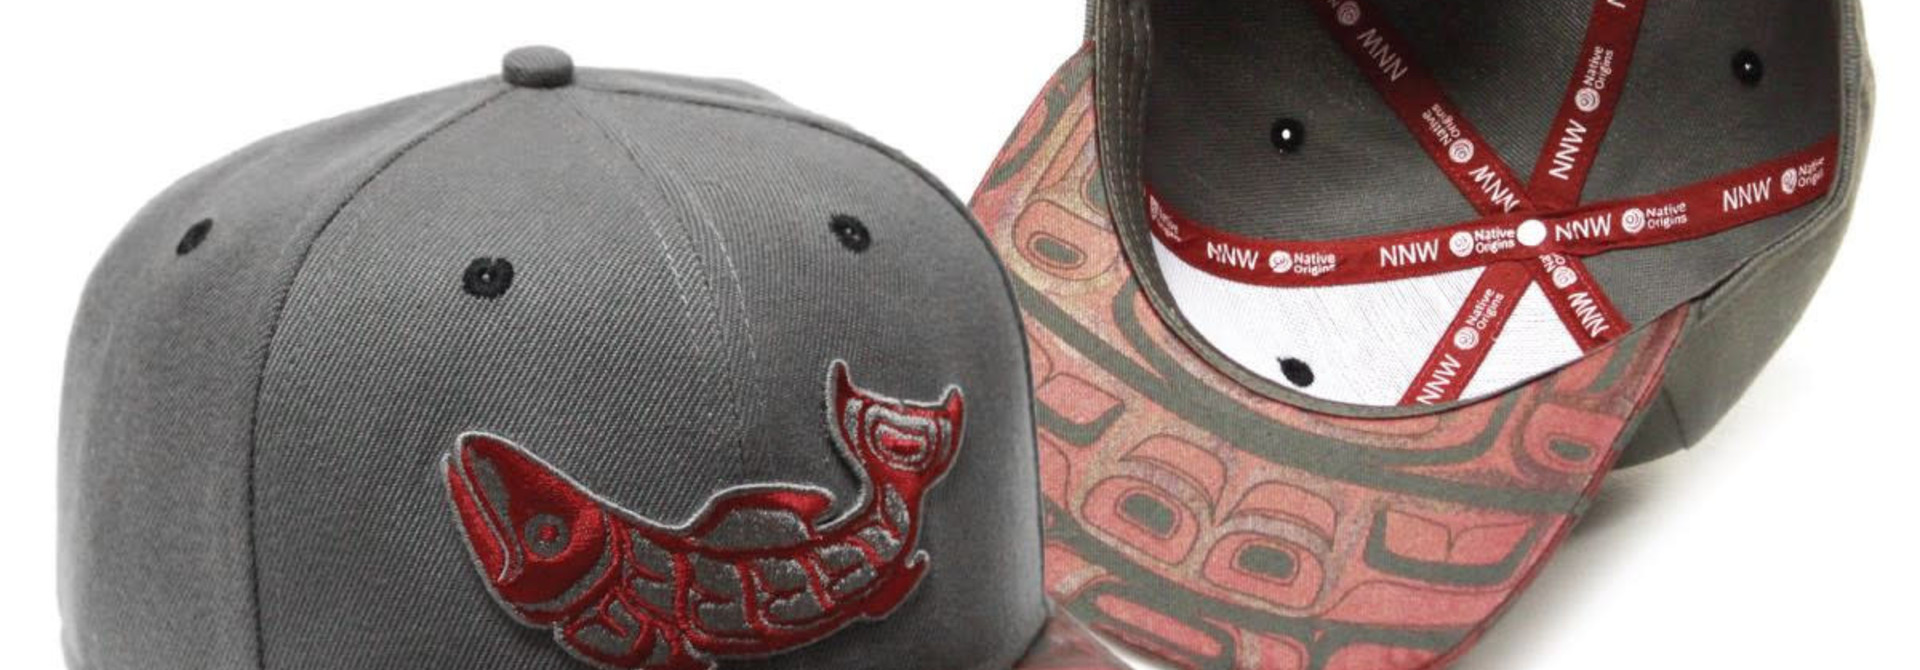 Snap Back Hat - Sustain by Corey W. Moraes